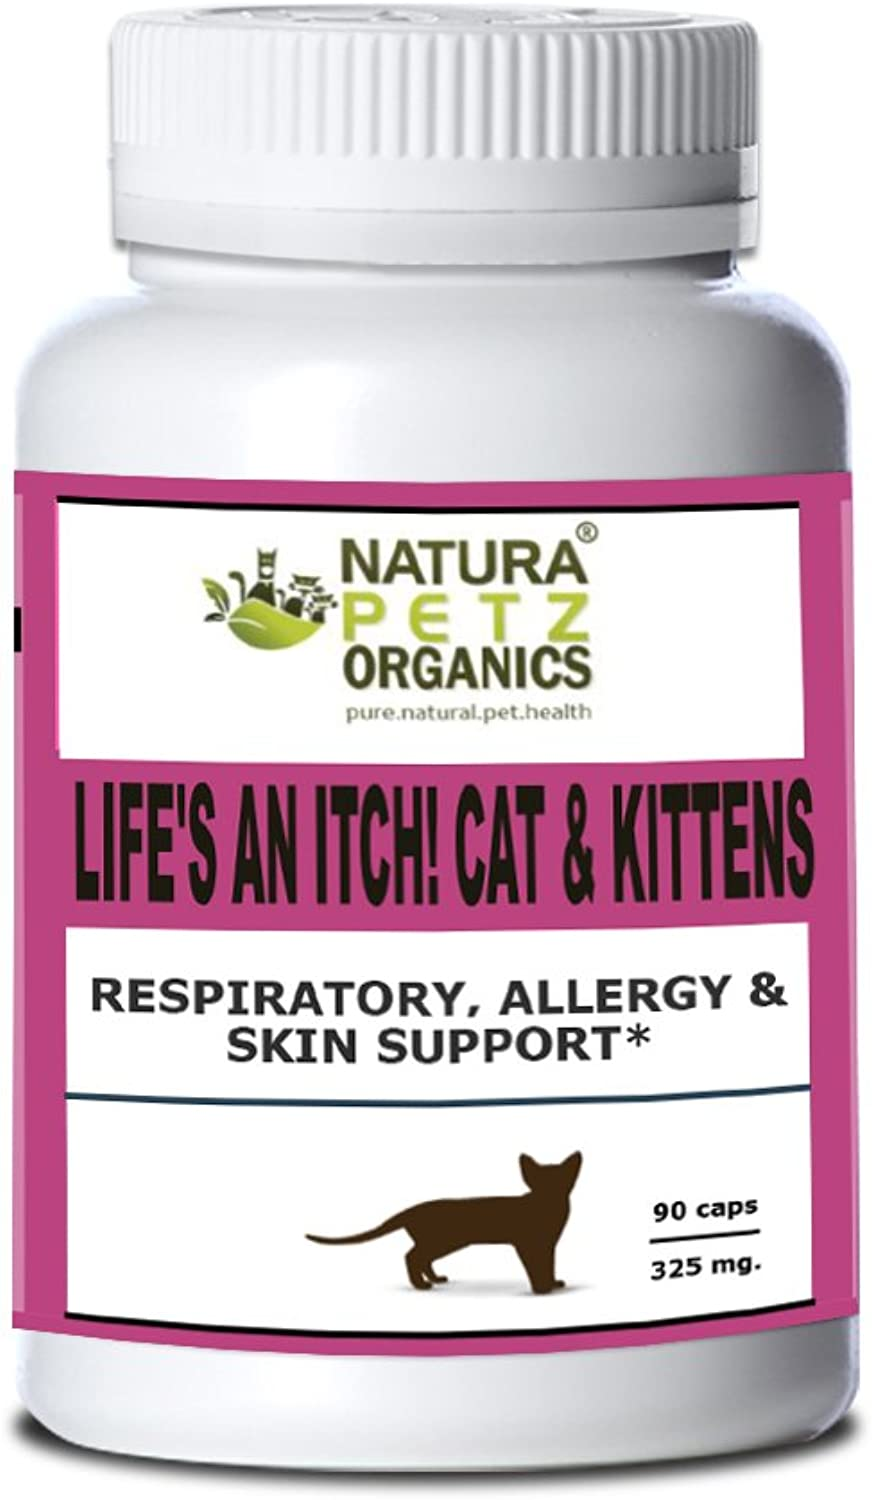 Natura Petz Organics Life's an Itch  Respiratory, Allergy & Skin Support for Cats, Size 3